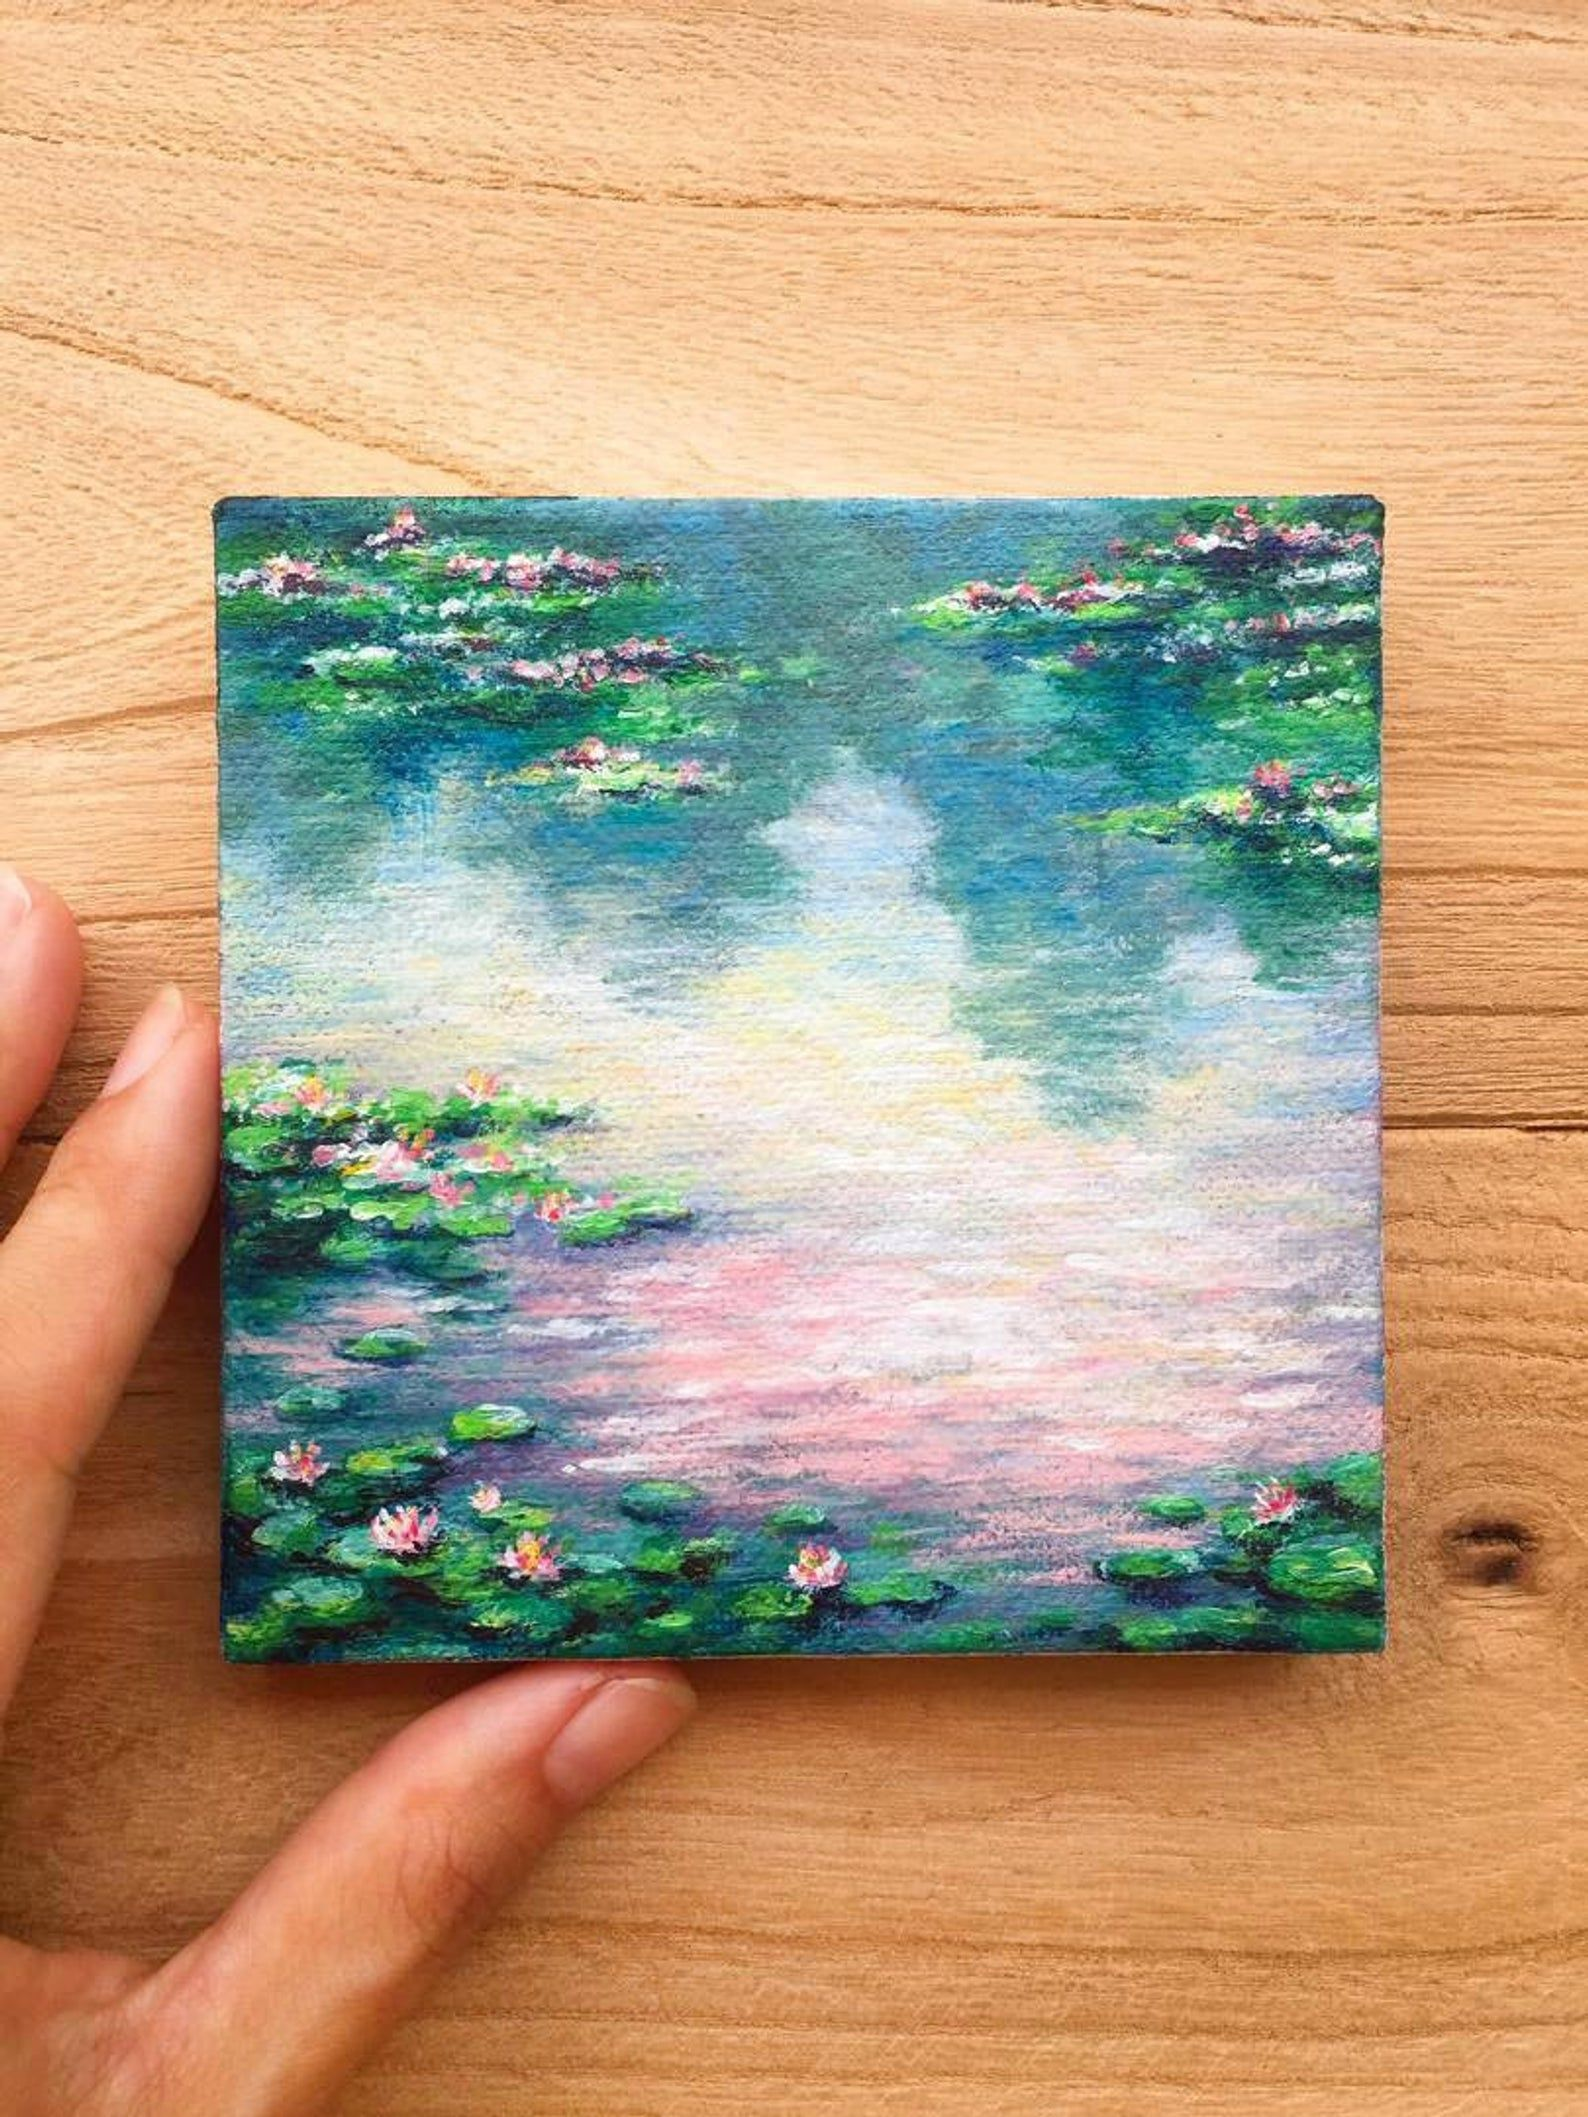 "10x10 cm 4x4/"" Artist Blank Cotton Canvas Stretched Ready TO USE Acrylic Oil"